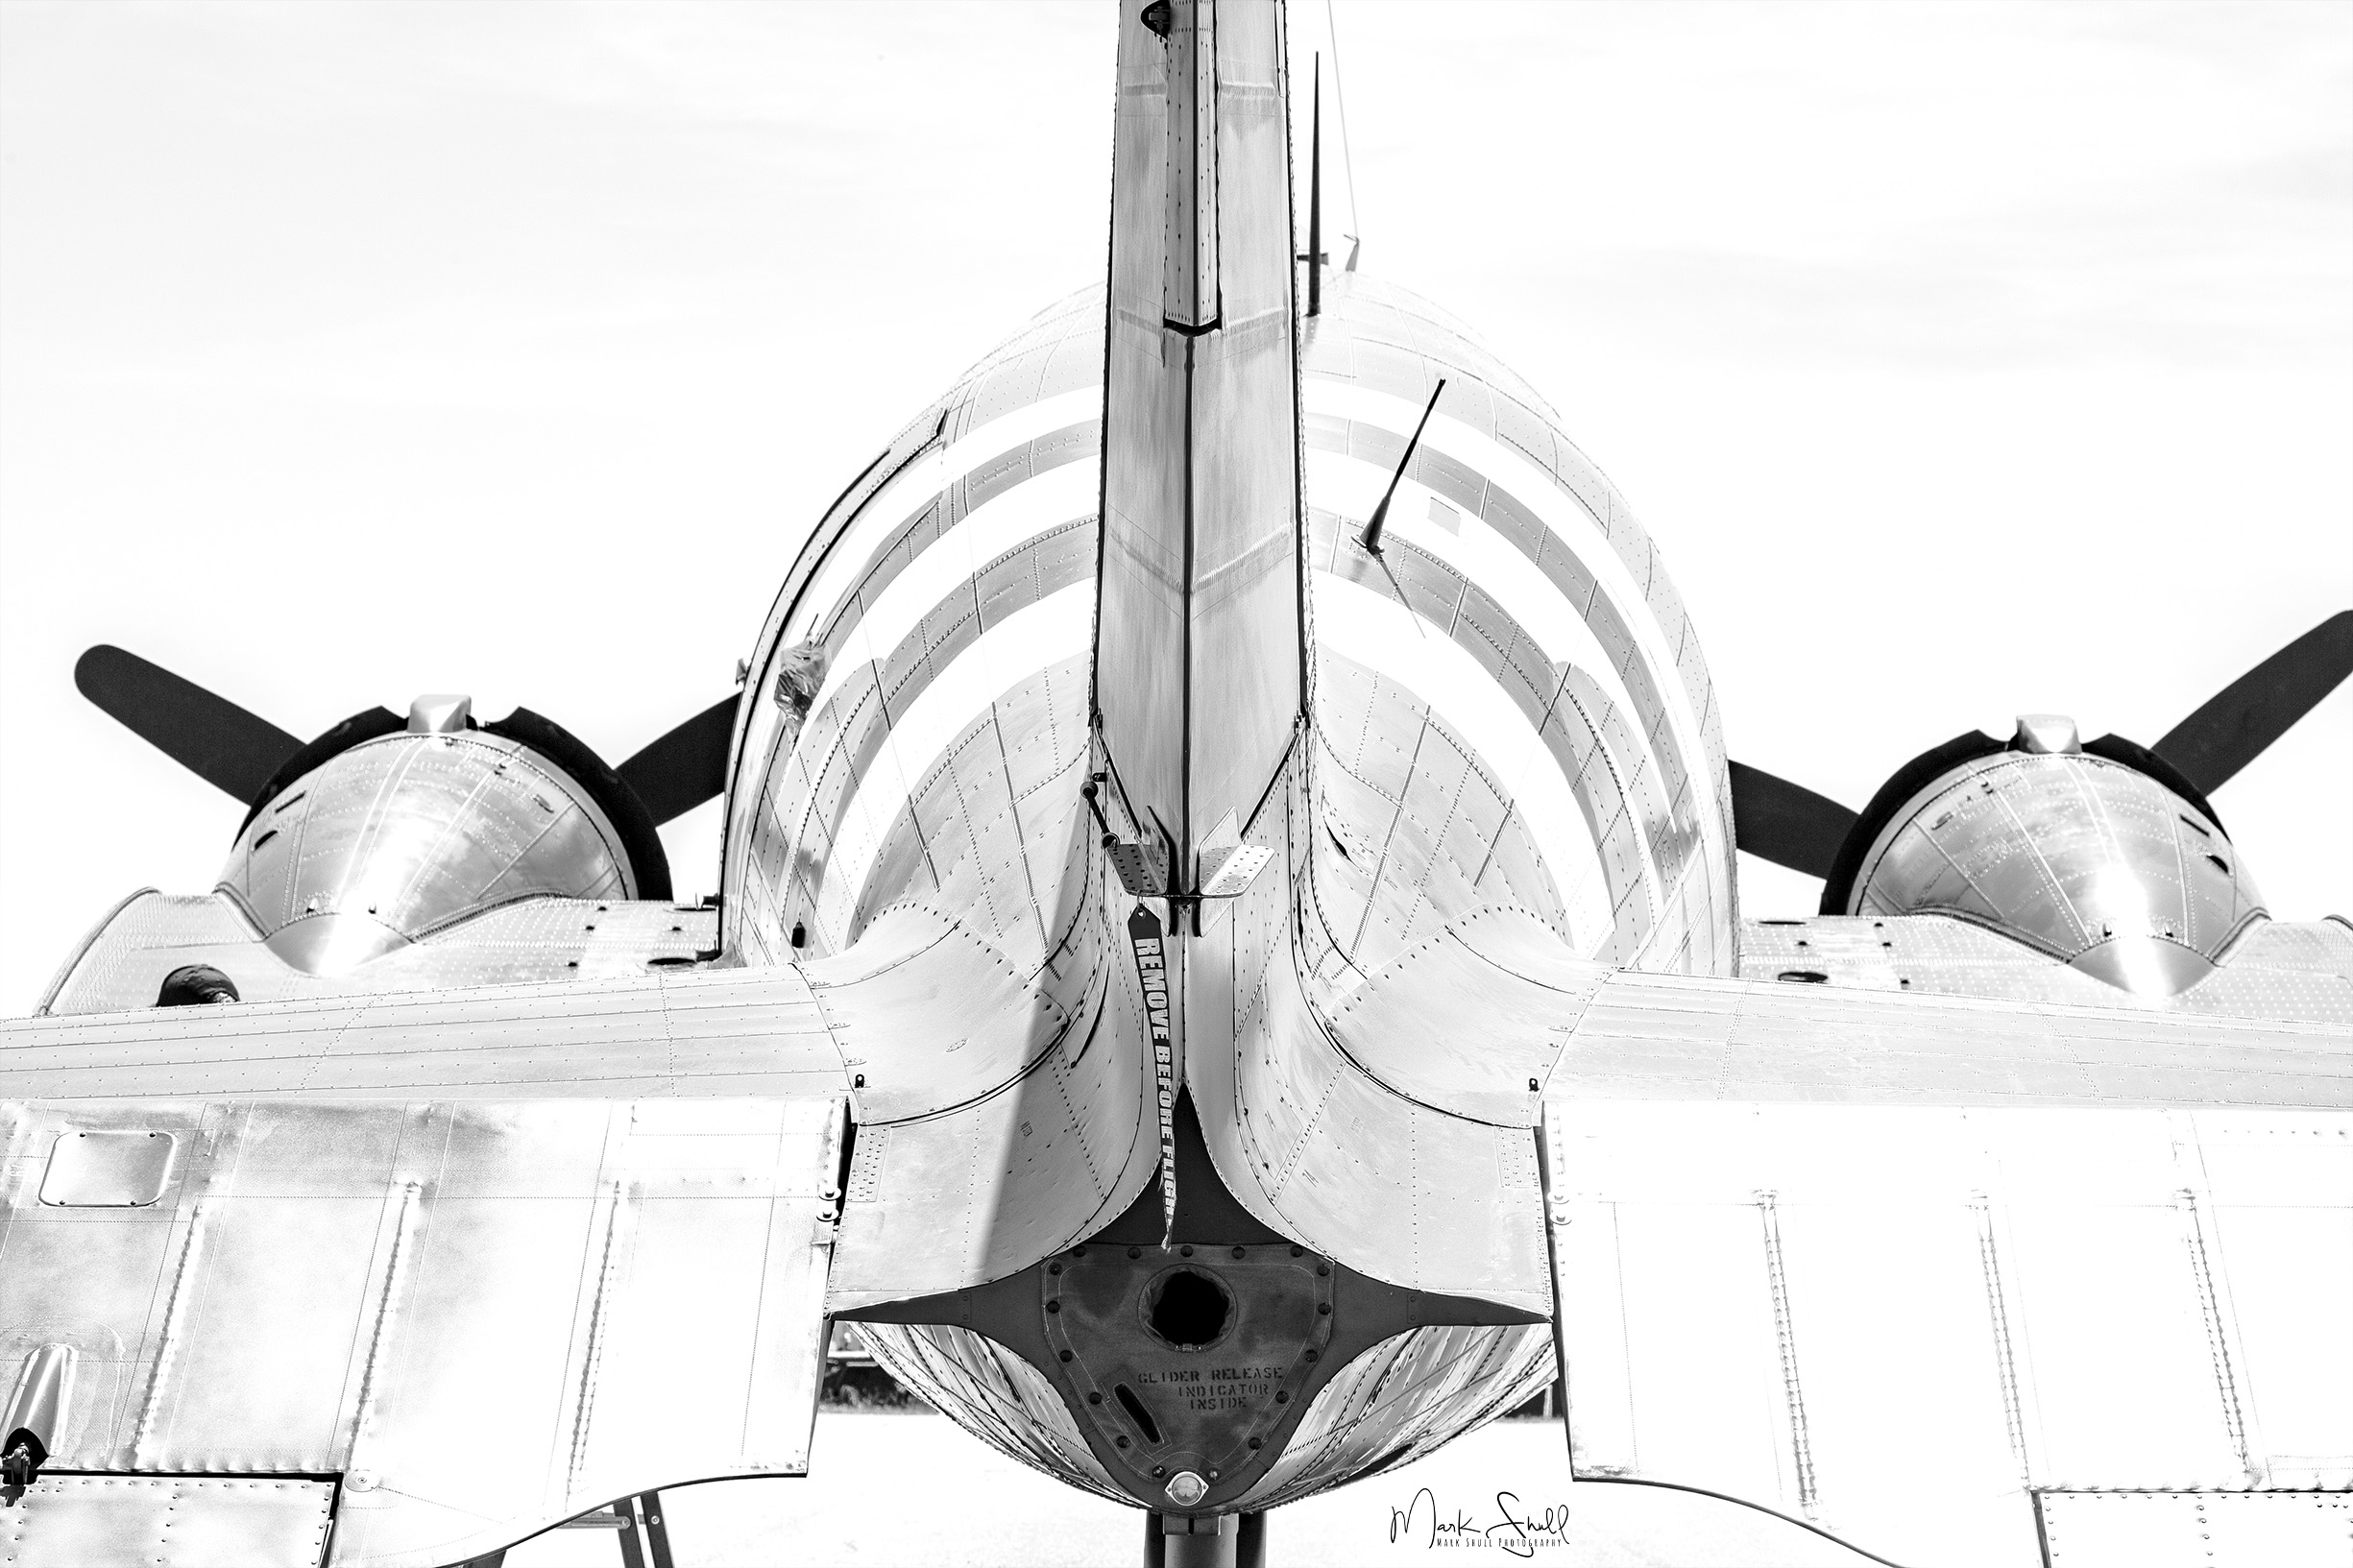 C-47 tail view bw IR post